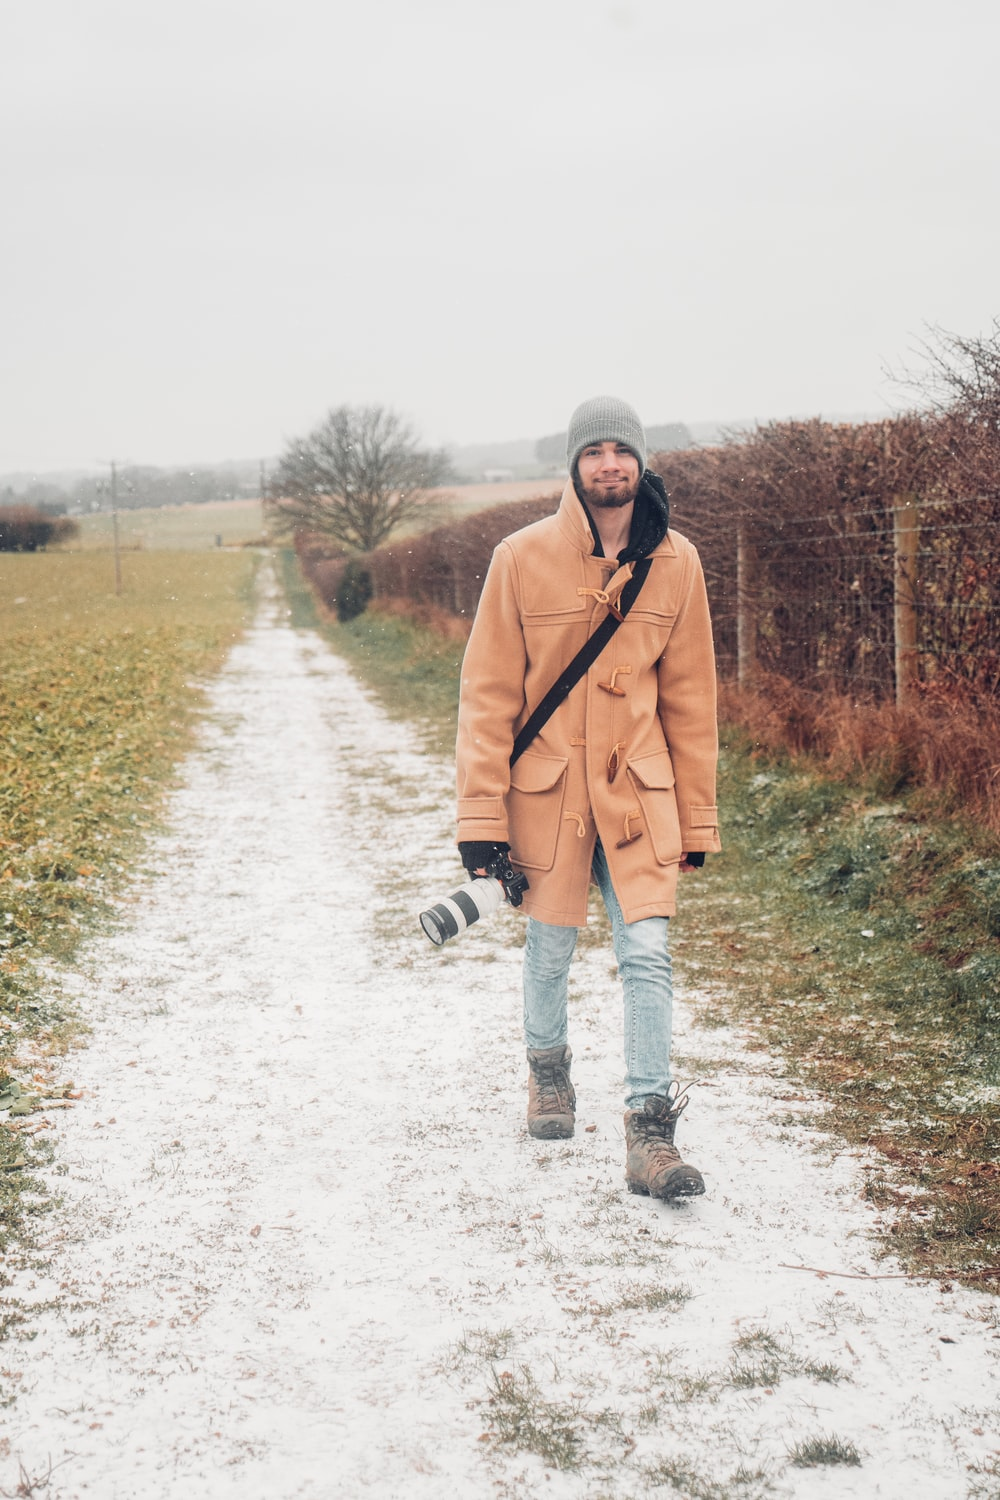 man in brown coat and black pants walking on snow covered ground during daytime